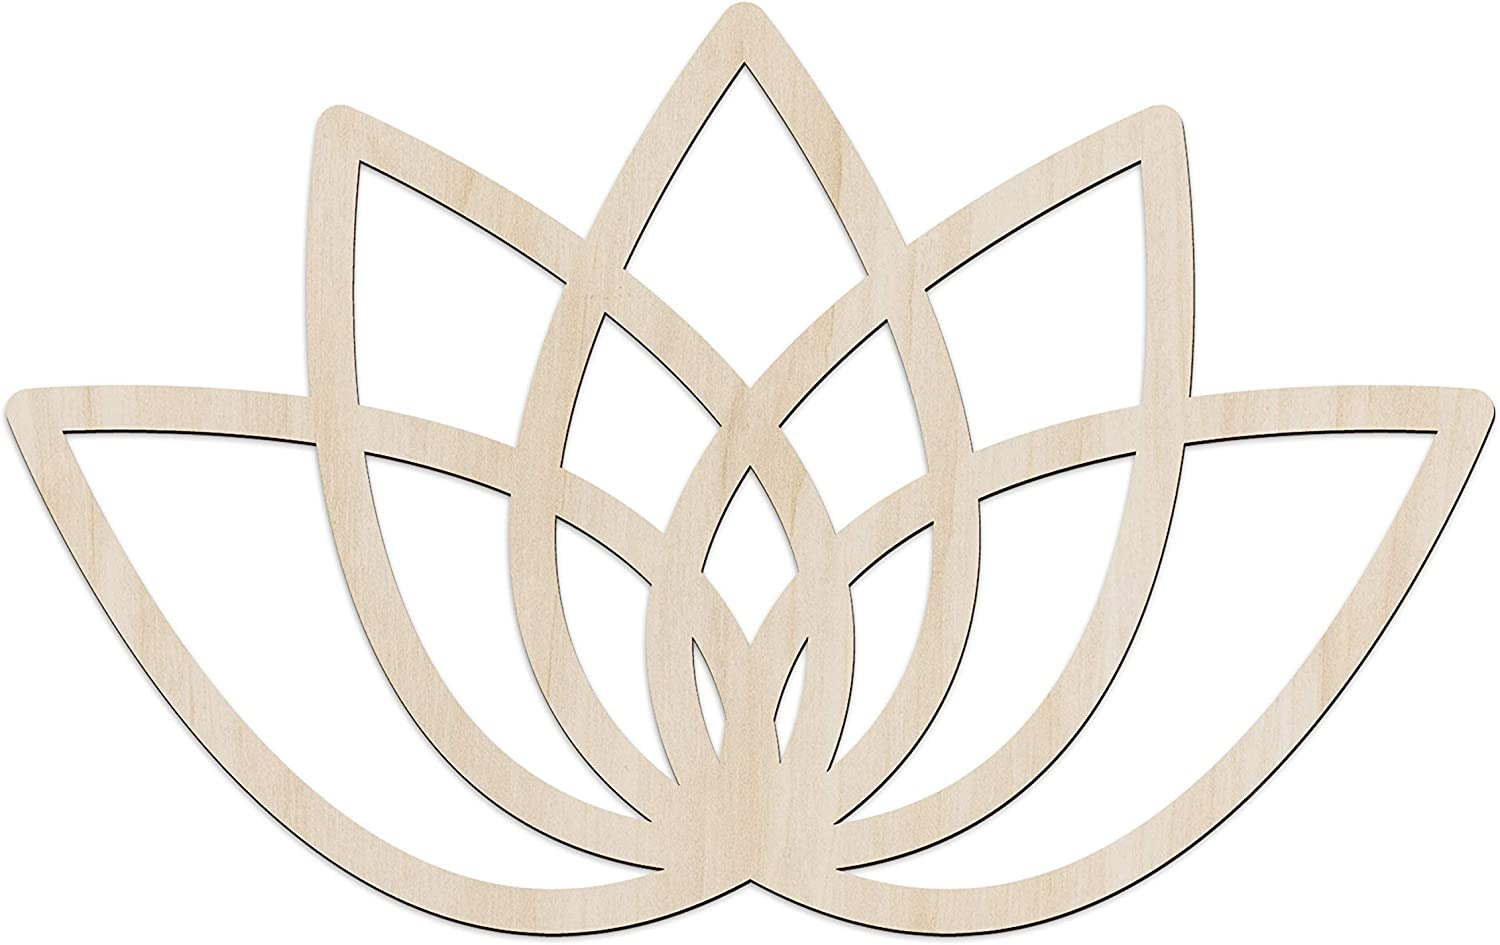 Ambesonne Mandala Wooden Wall Art, Simple Grid Lotus Petals Flower Spring, Birch Wood Plywood Rustic Wall Art Accent for Hallway Bedroom Living Room Cafes and Offices, 11.4